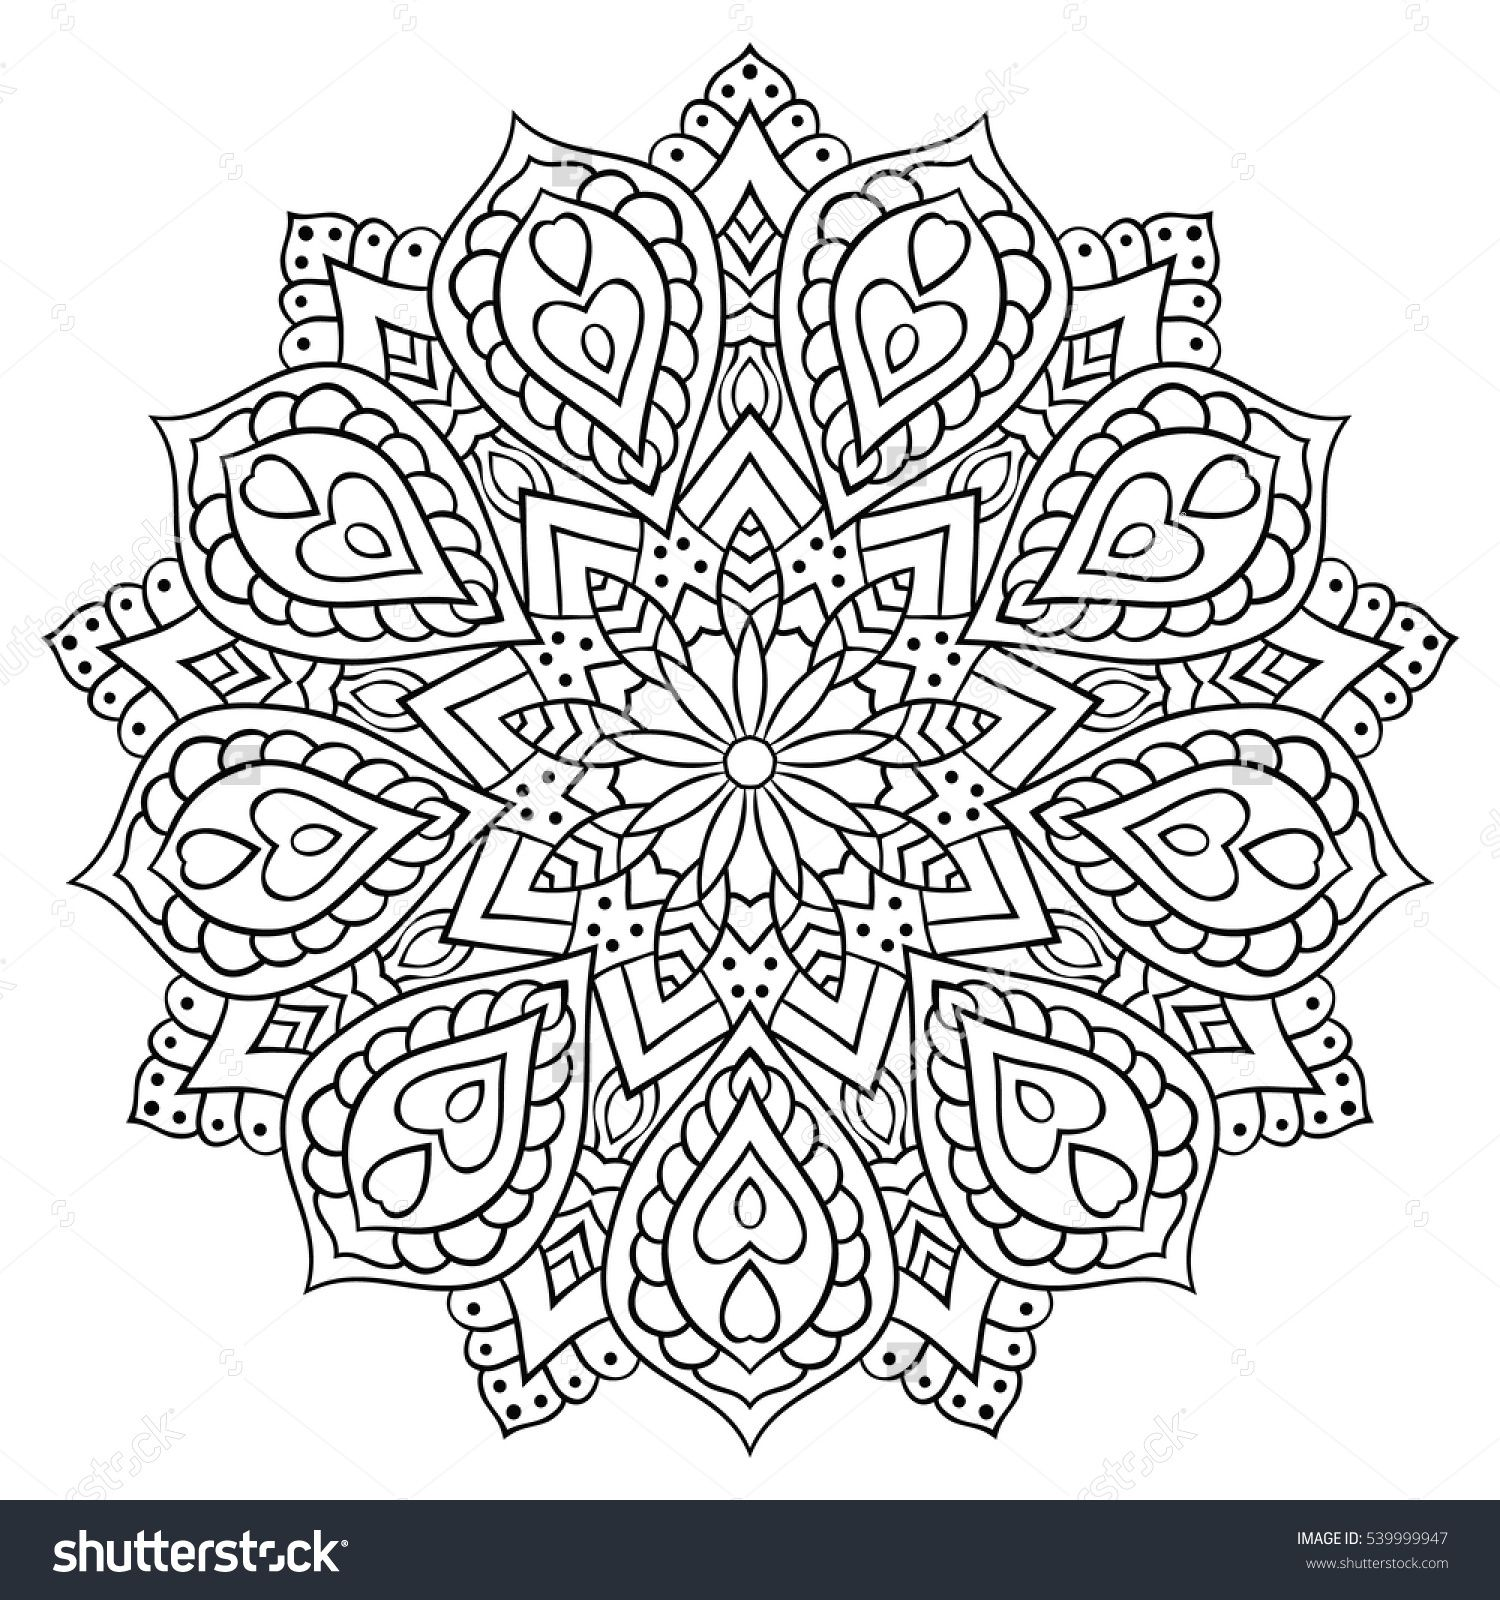 Circular Geometric Ornament Round Outline Mandala For Coloring Page Vintage Decorative Elements Abstract Coloring Pages Mandala Drawing Mandala Coloring